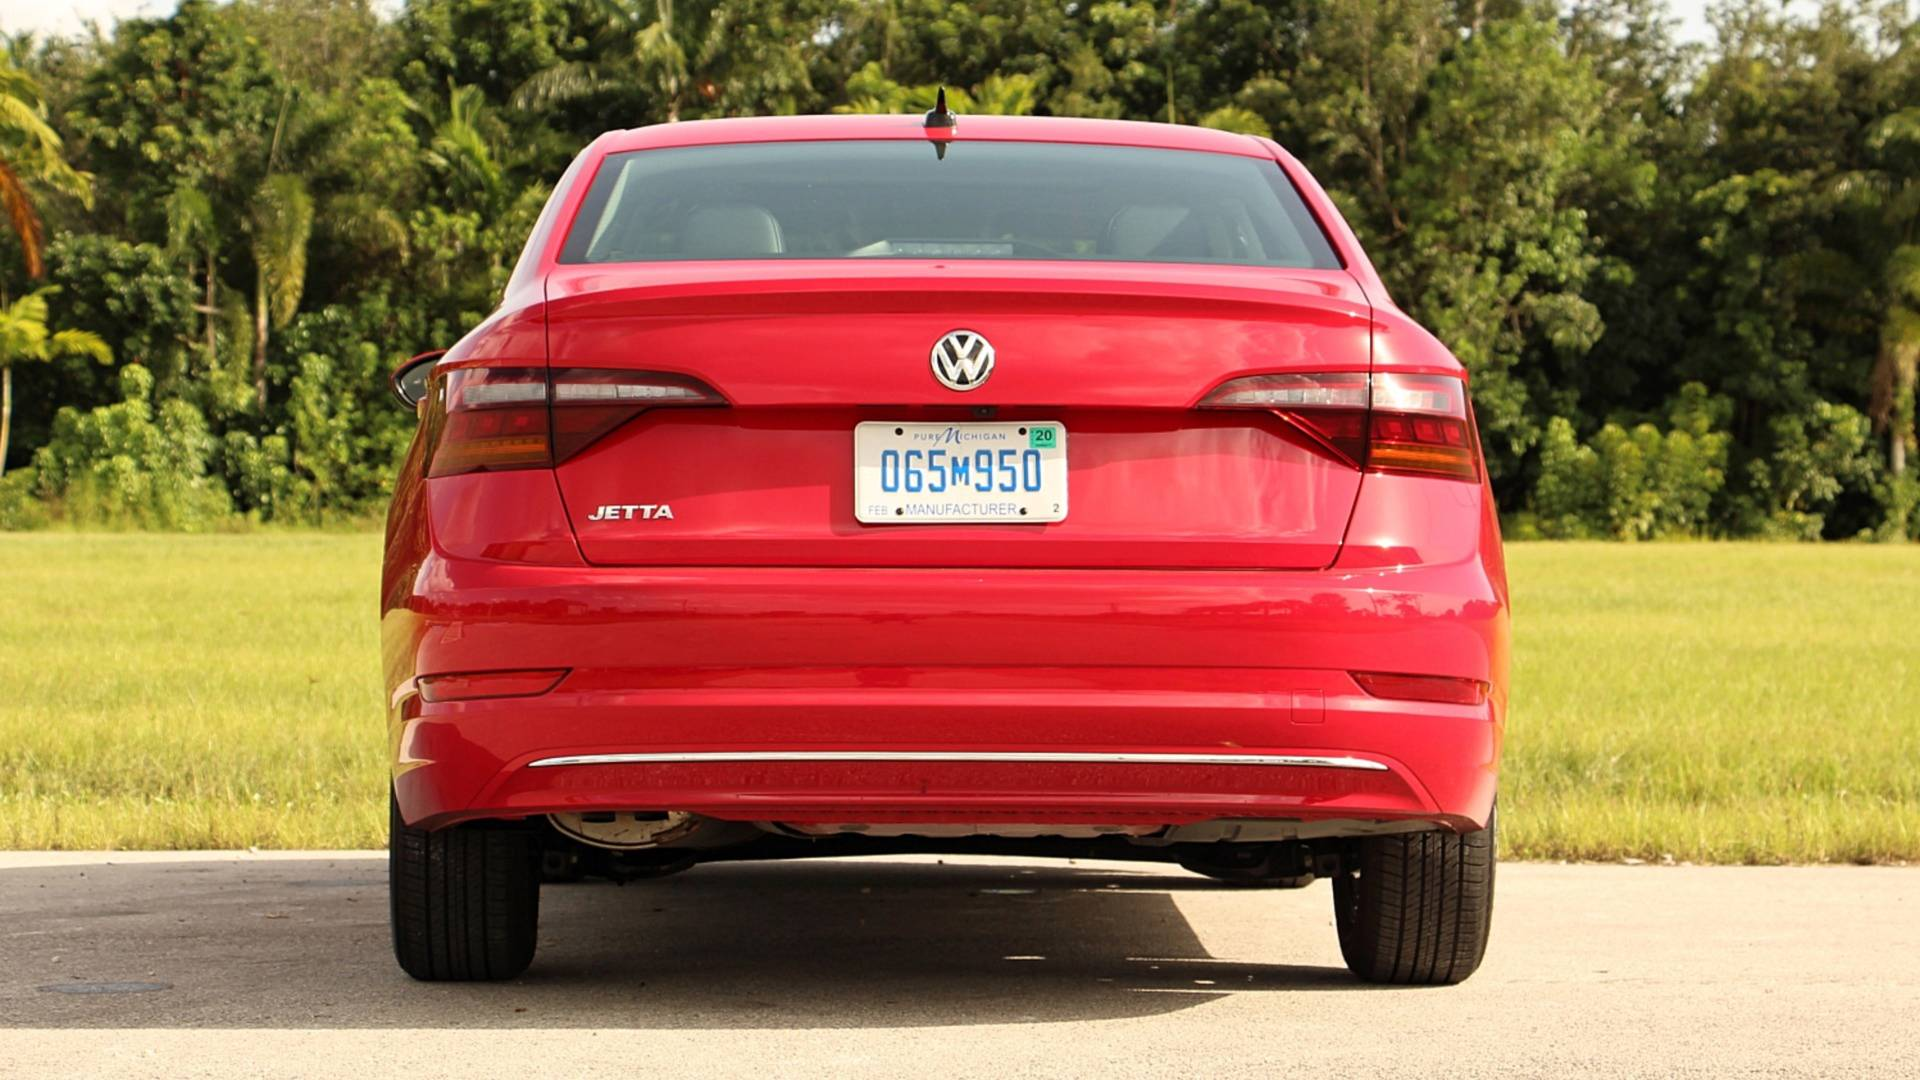 2019-volkswagen-jetta-review-3.jpg